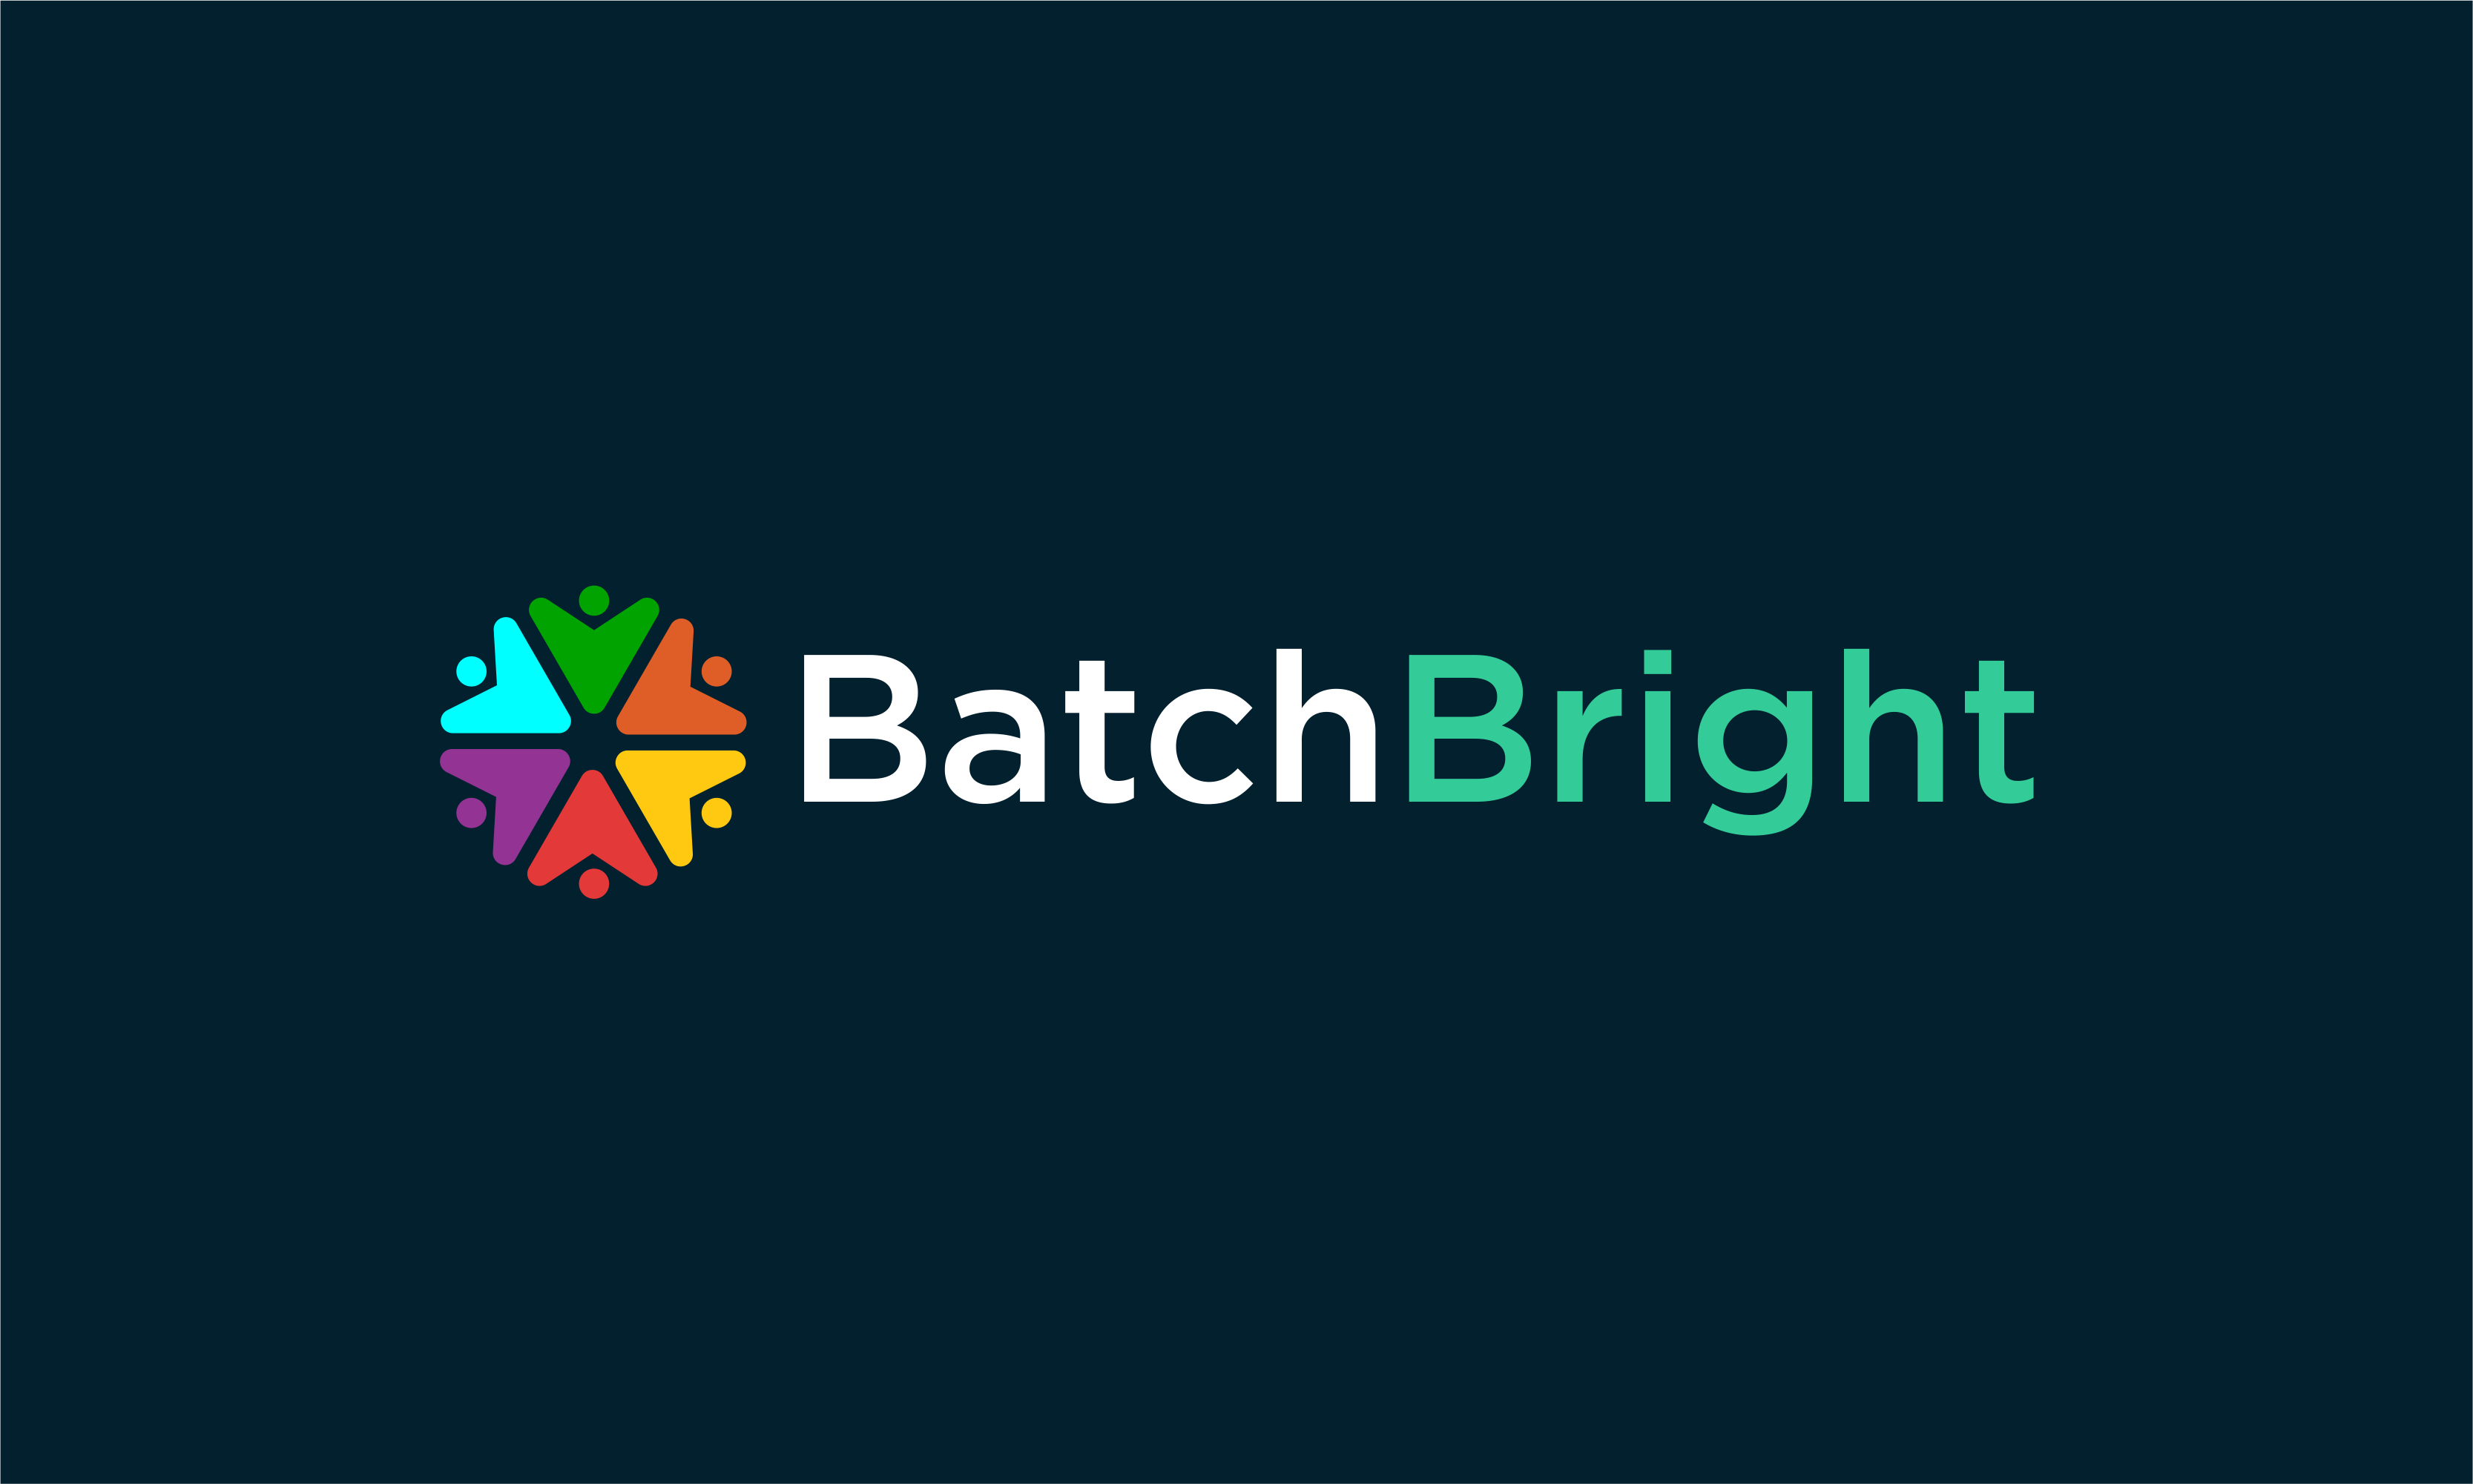 Batchbright